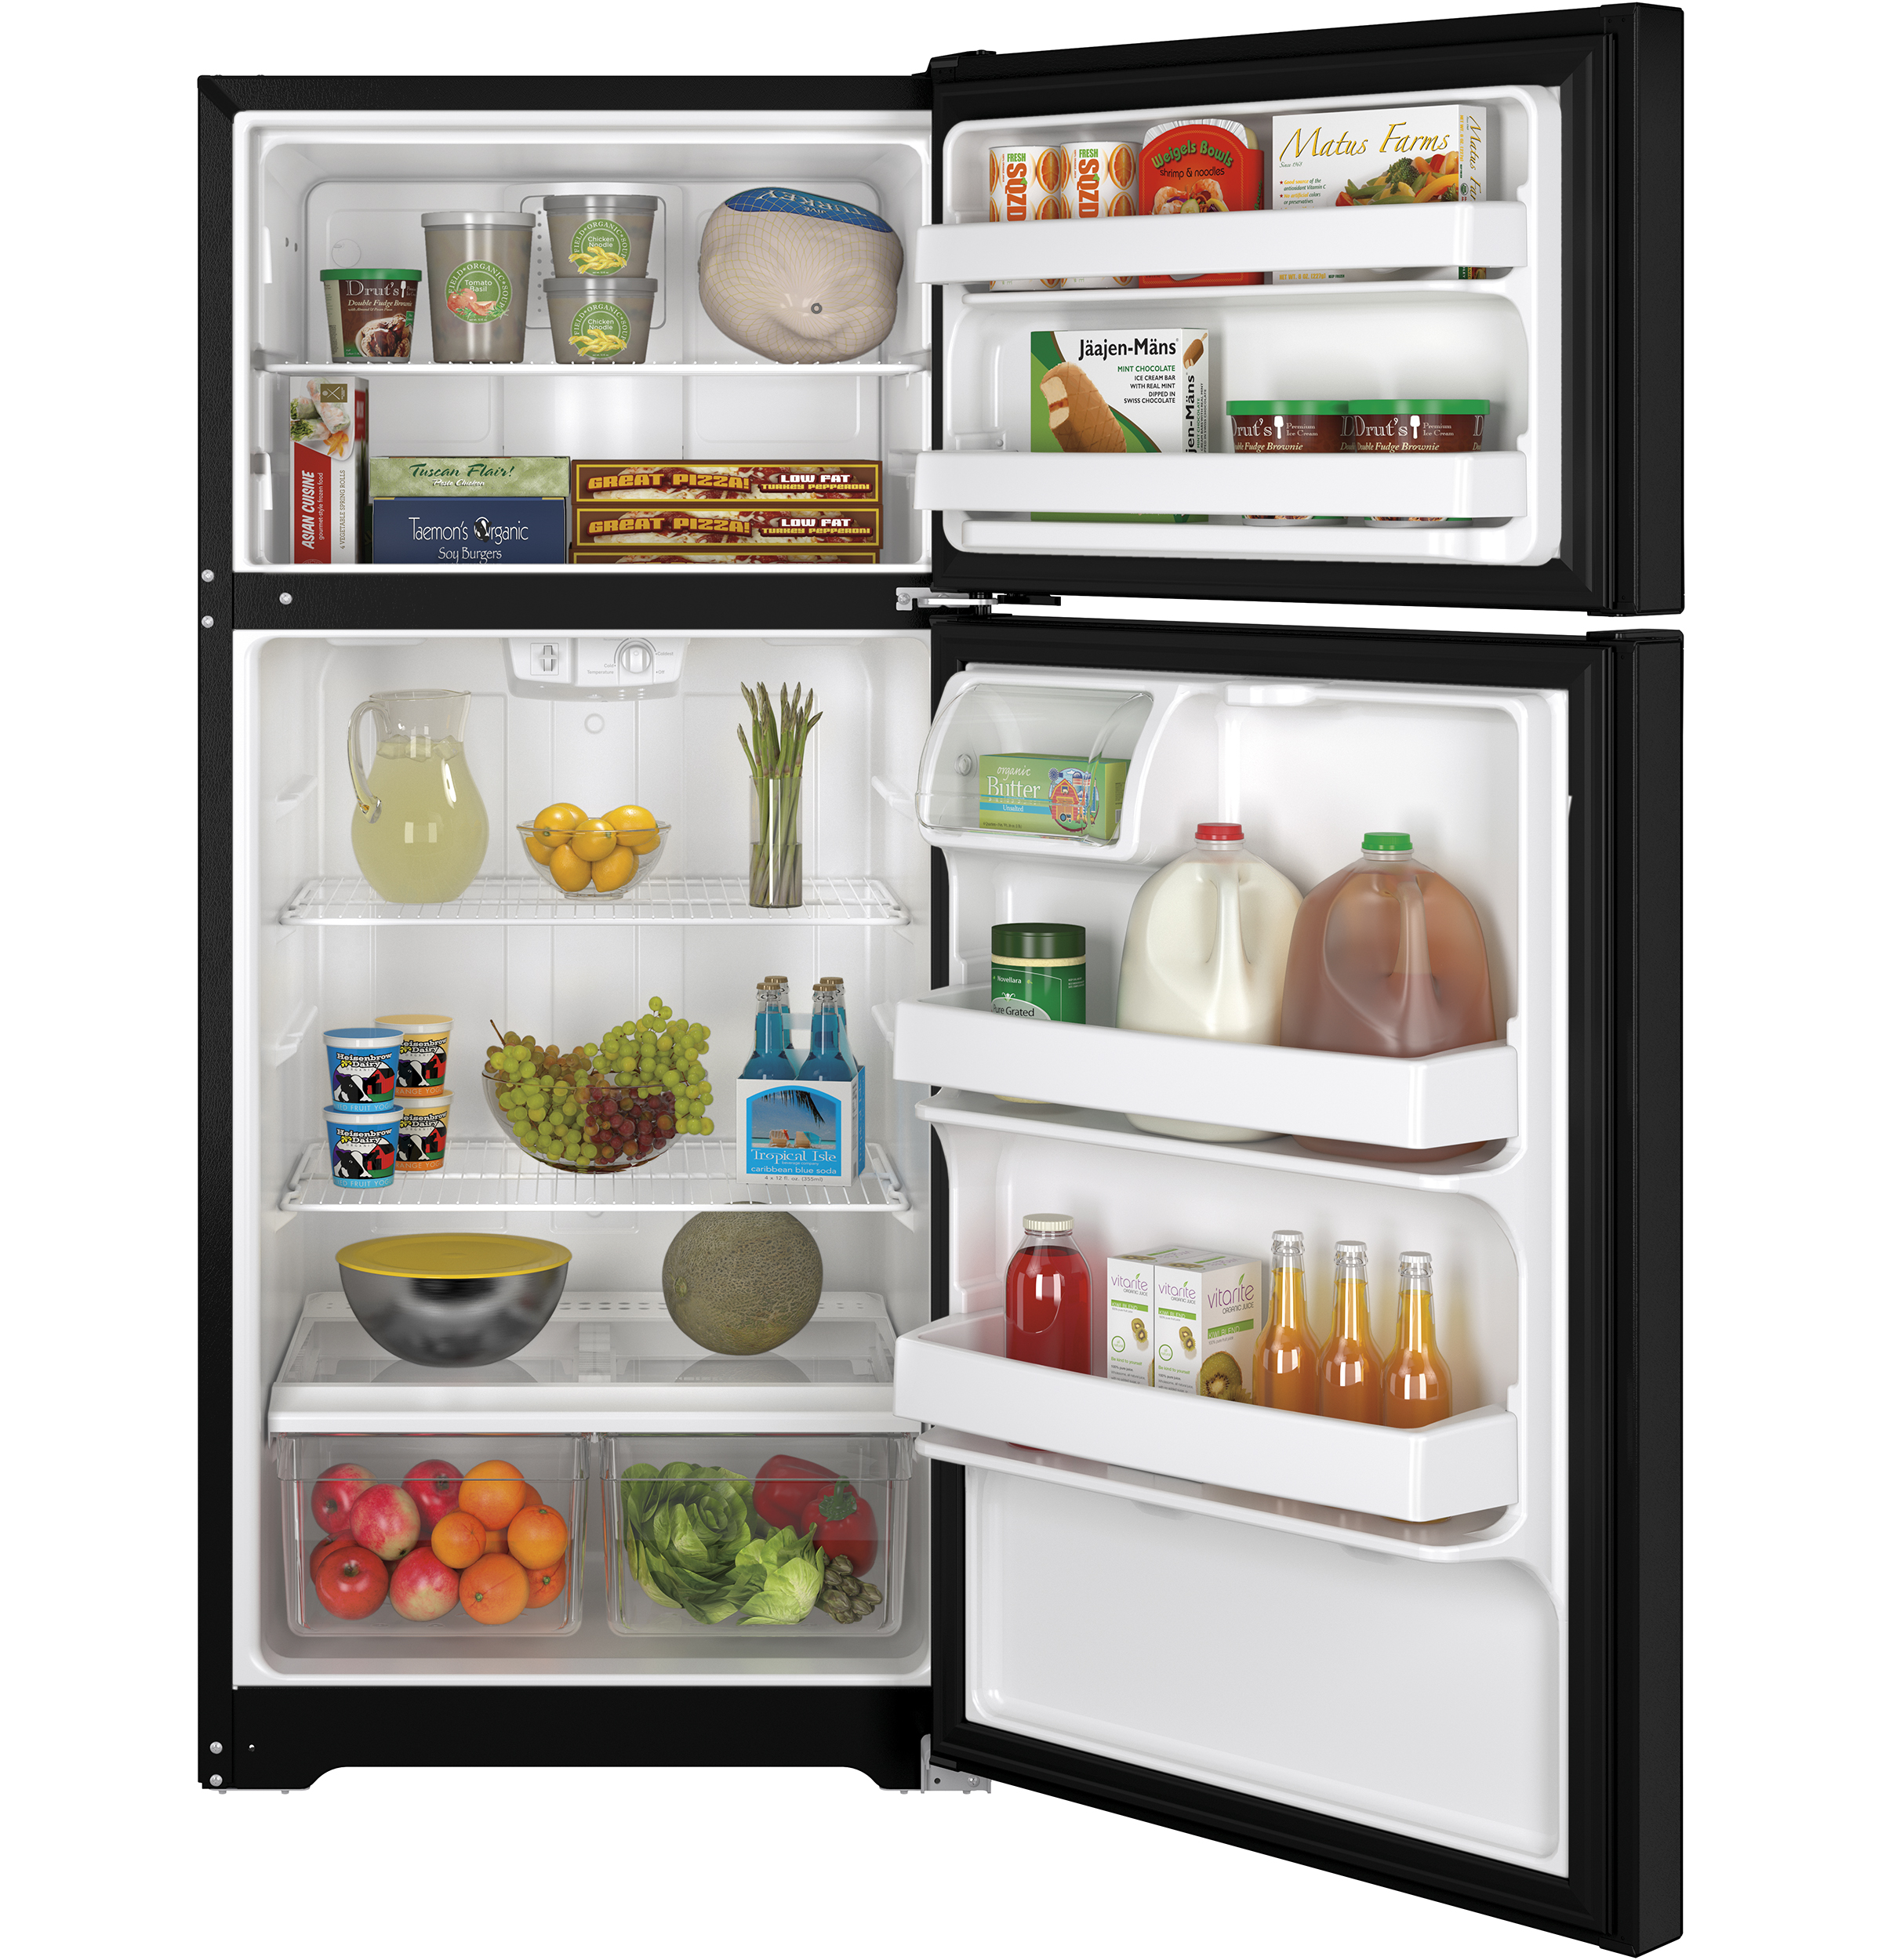 GE Appliances 14.6 Cu. Ft. Top-Freezer Refrigerator -Black